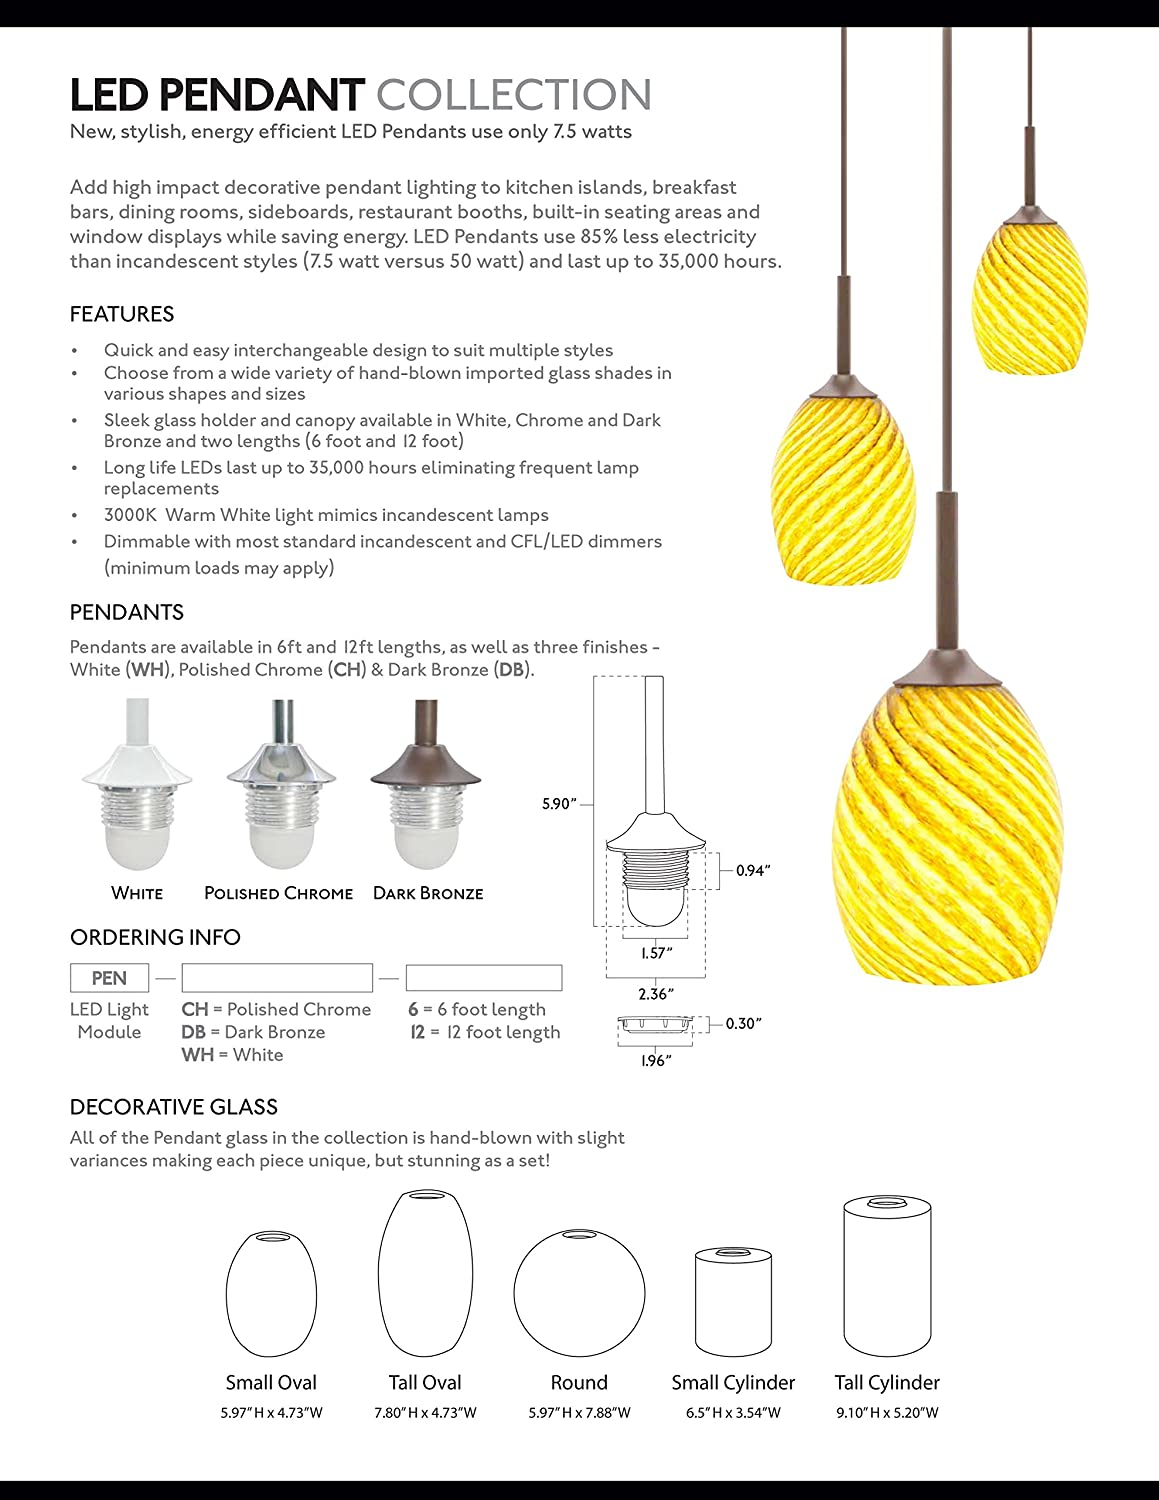 American Lighting PEN-WH-6 Hanging LED Pendant Light Module with 6-Feet Cord White